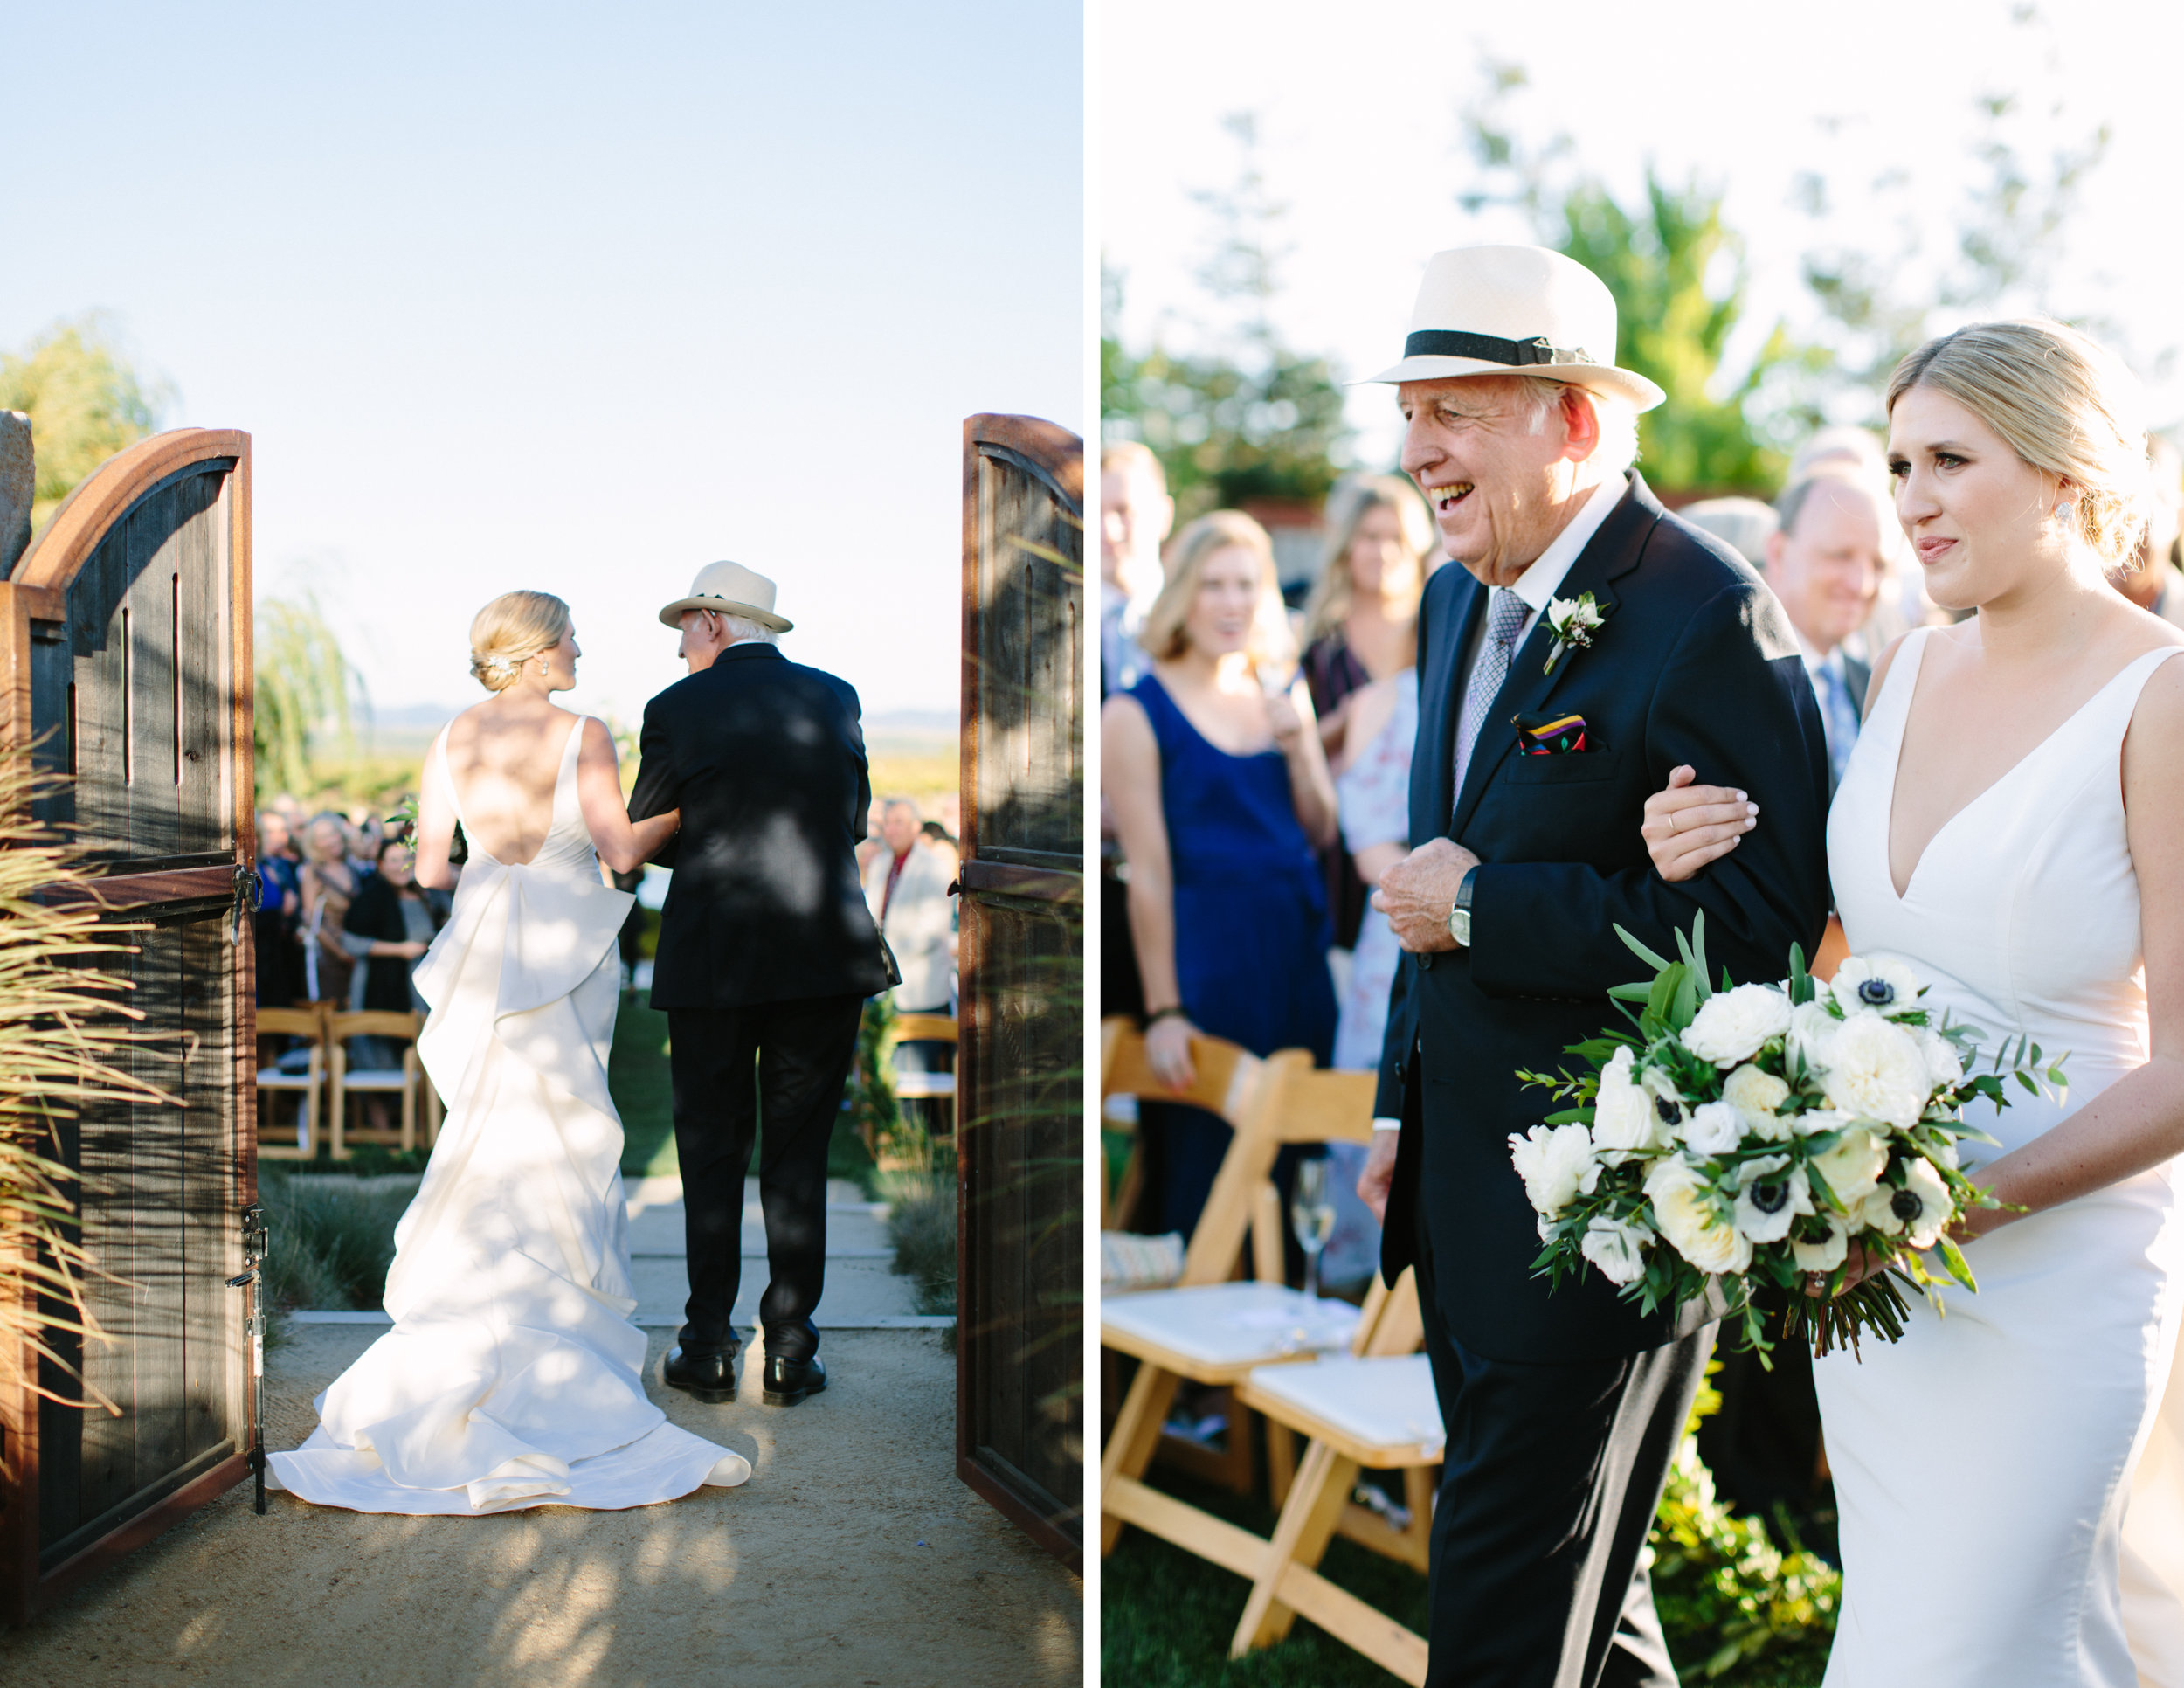 sonoma modern barn wedding 11.jpg